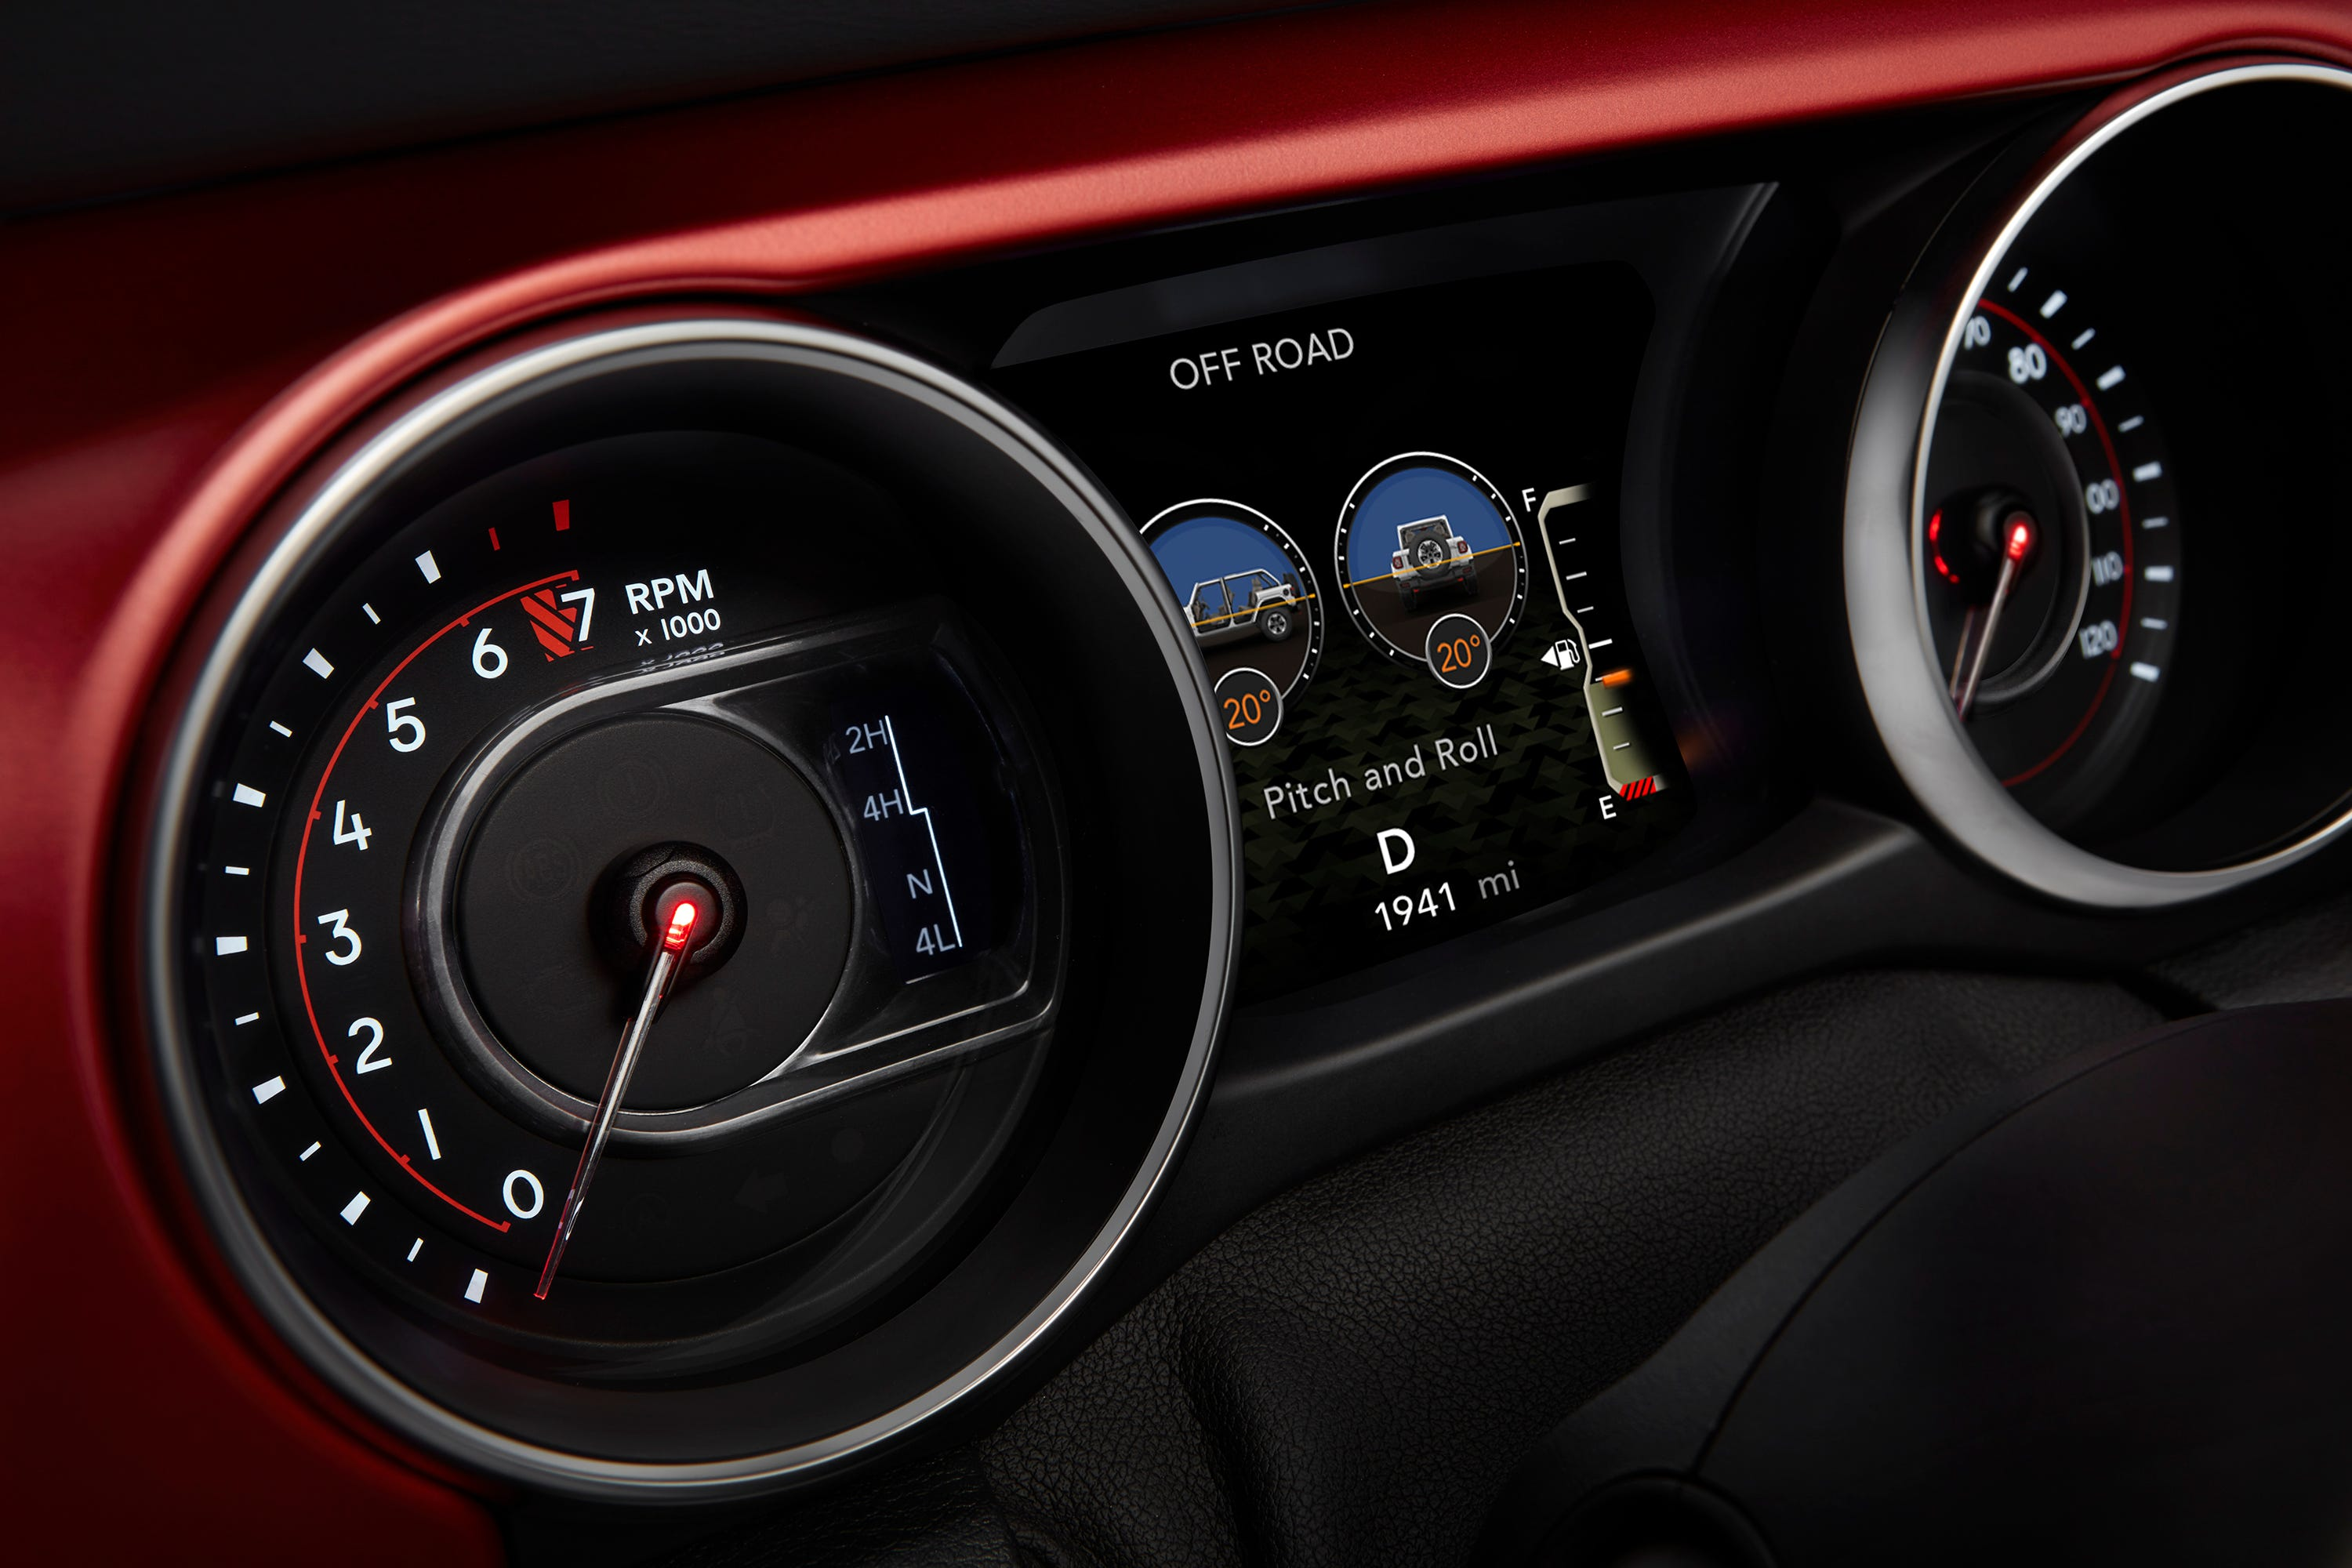 This is the instrument panel in the 2018 Jeep Wrangler